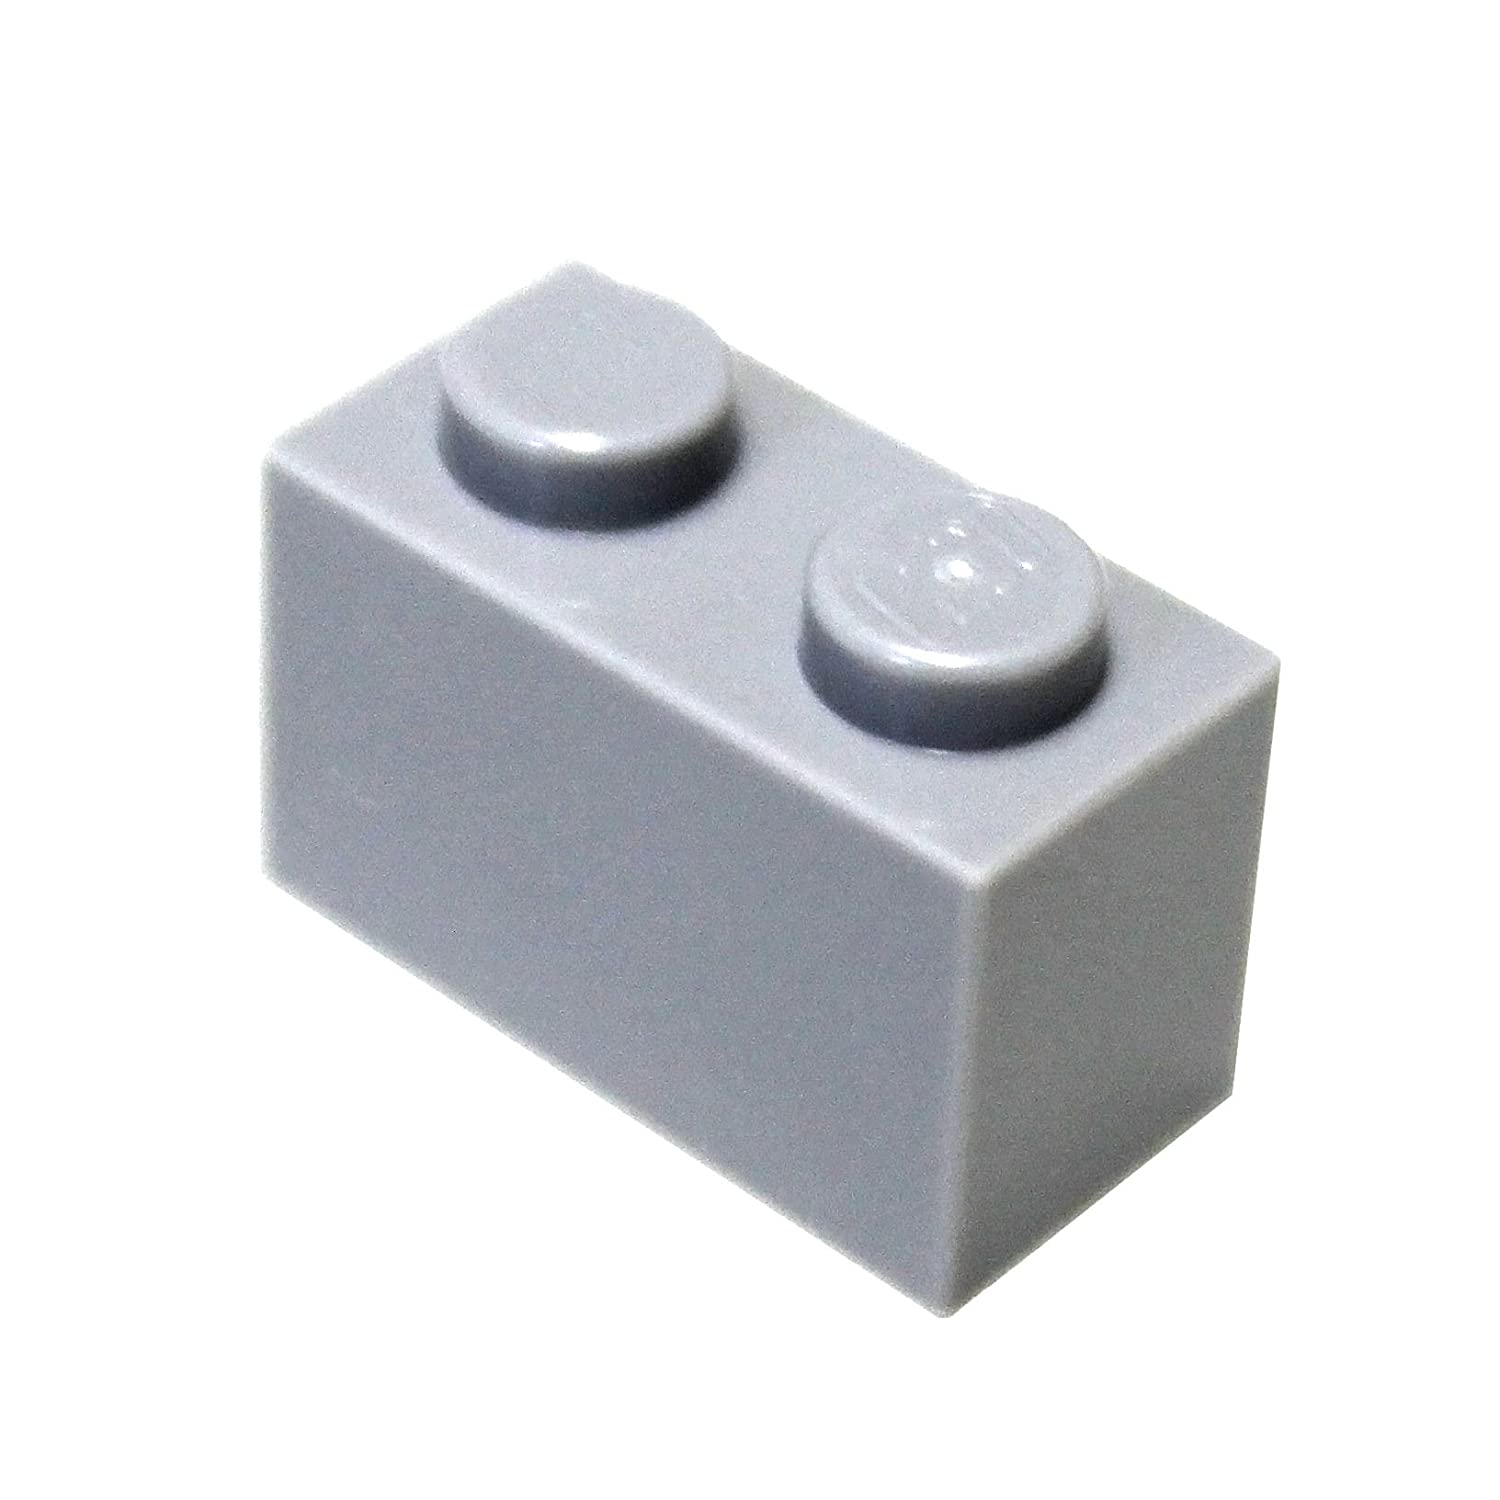 LEGO Lot of 4 Light Bluish Gray 2x4 Slope Pieces